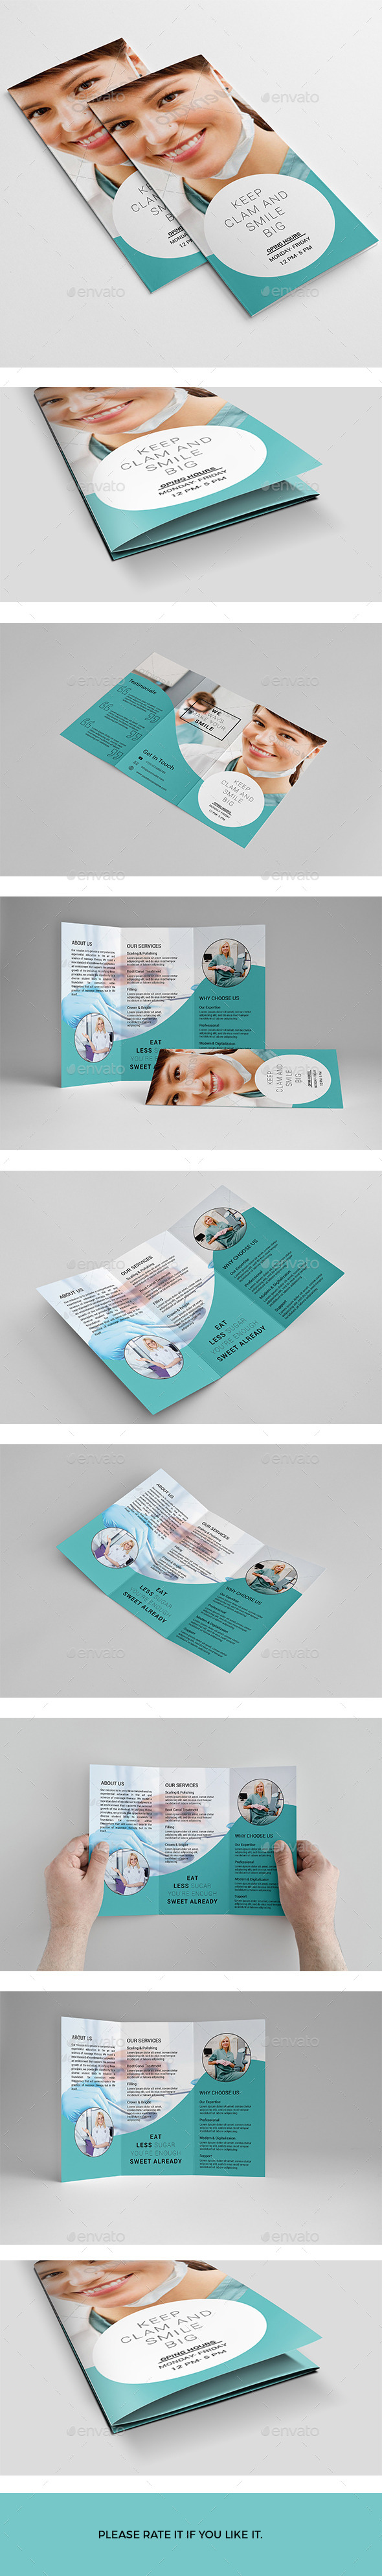 GraphicRiver Trifold Brochure 11547915